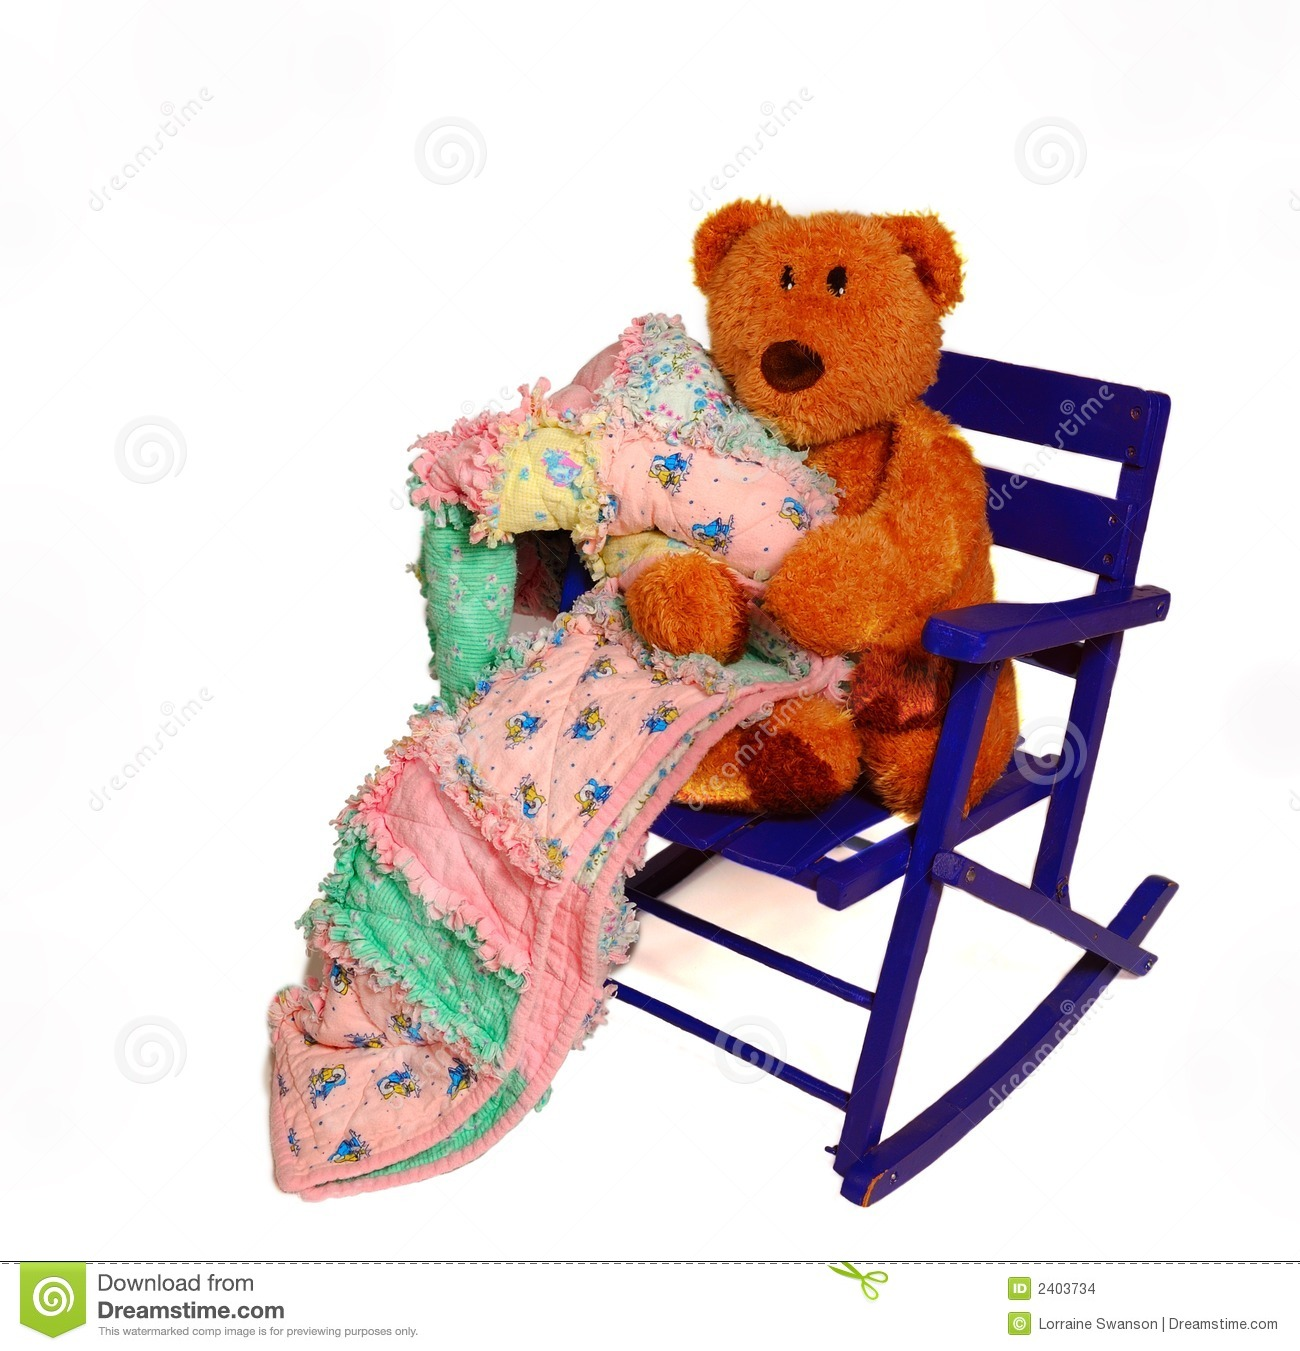 Teddy Bear And Rocking Chair Stock Photo  Image 2403734